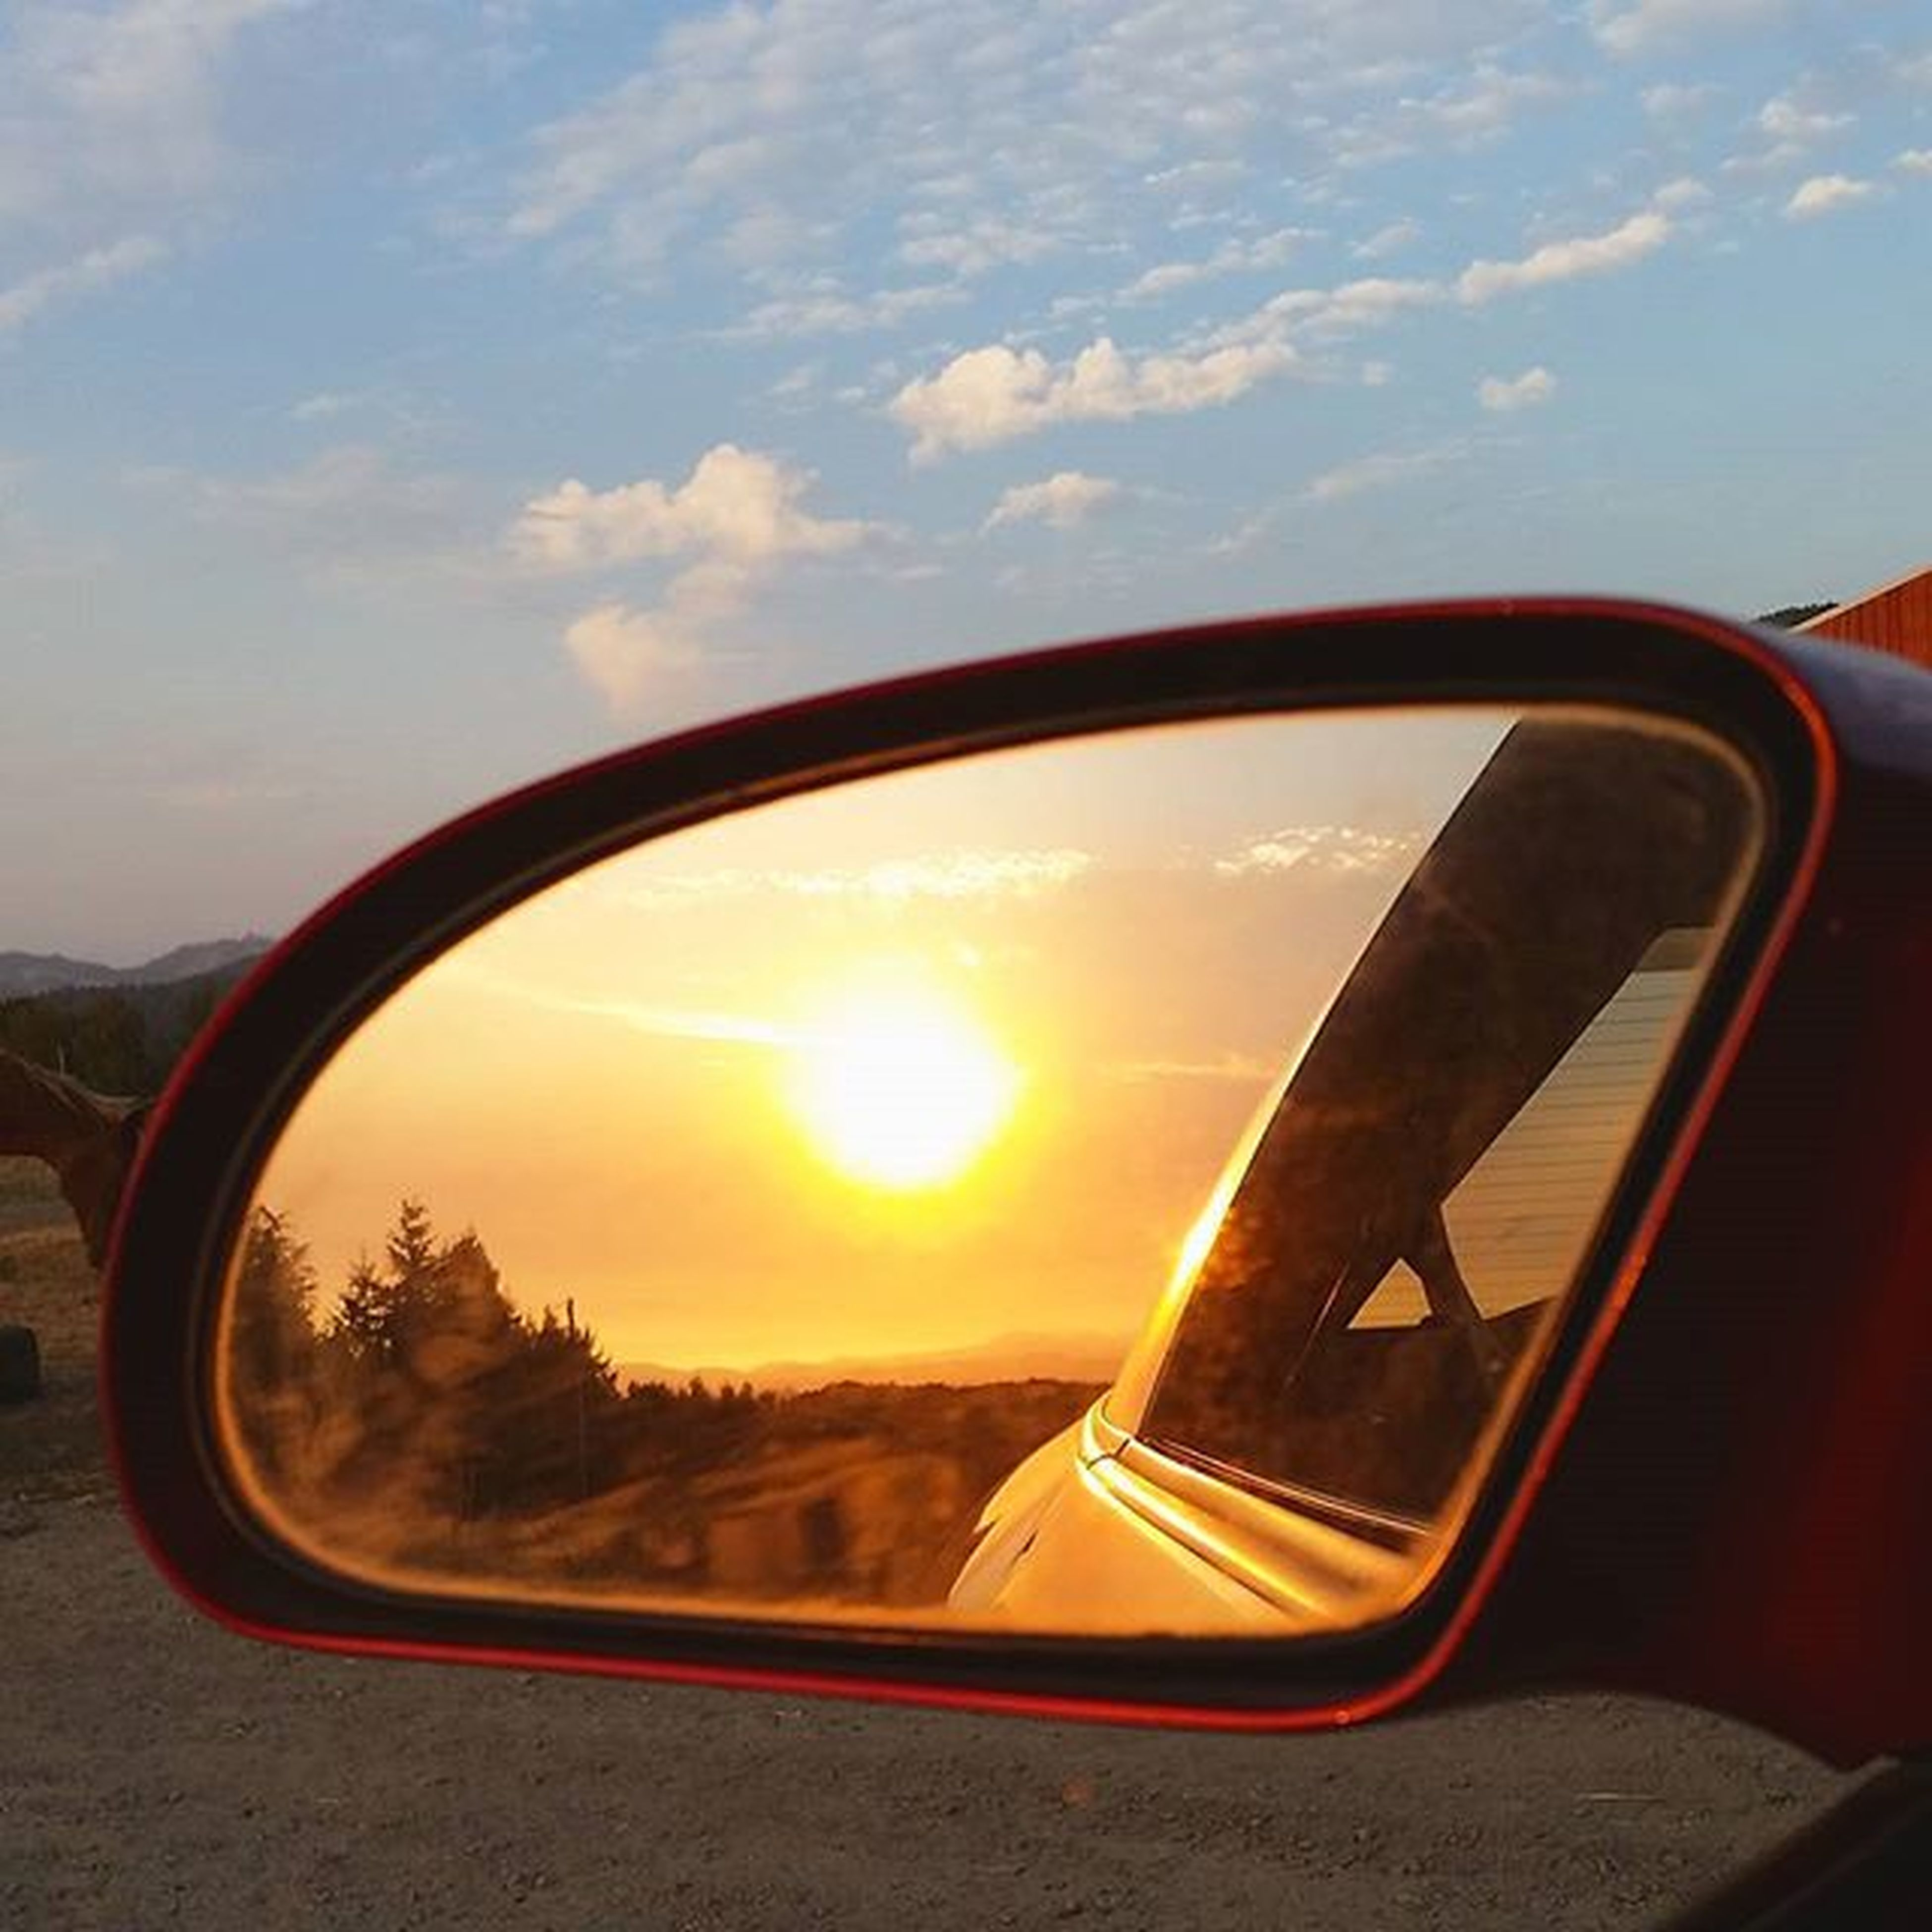 transportation, sunset, side-view mirror, mode of transport, sky, car, land vehicle, reflection, road, cloud - sky, vehicle interior, part of, glass - material, transparent, cloud, silhouette, close-up, orange color, travel, cropped